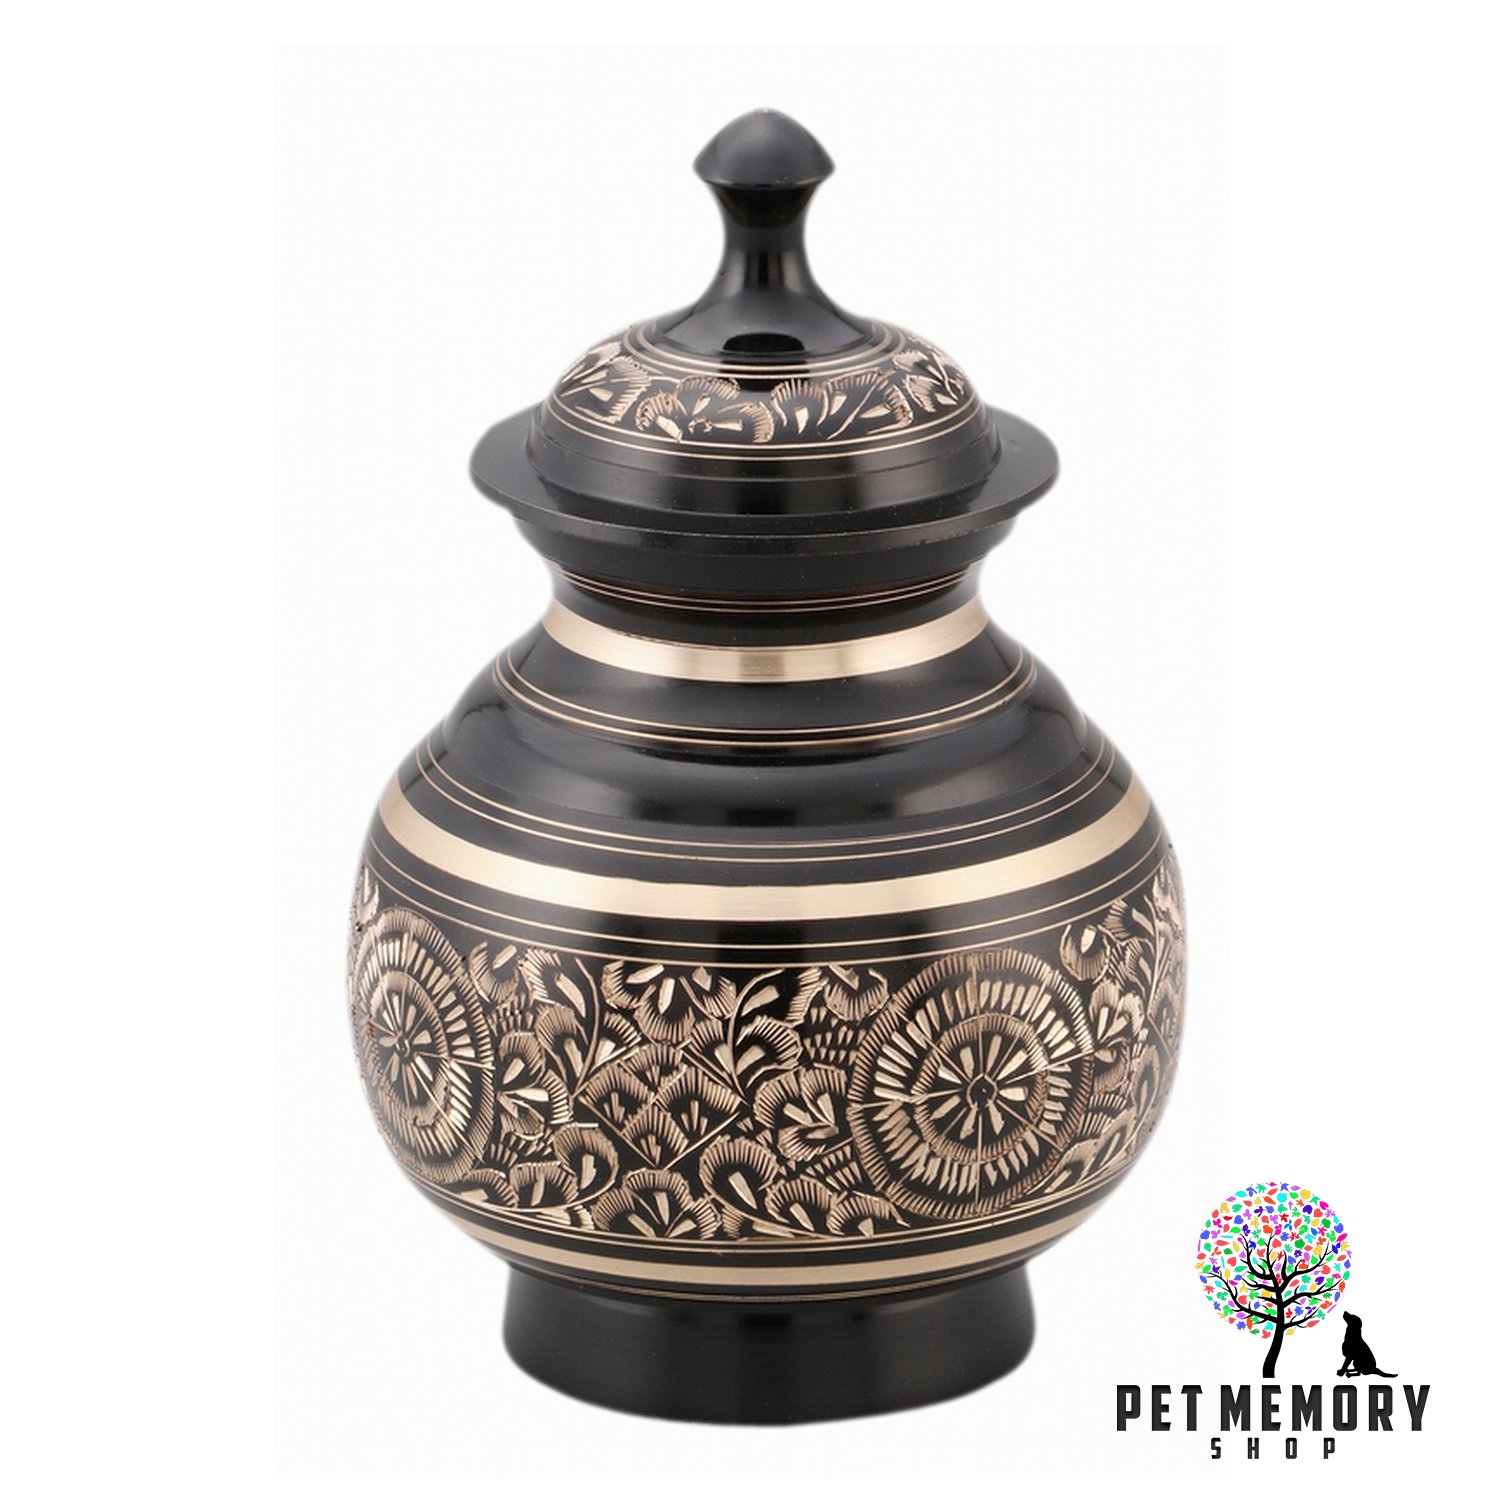 Pet Memory Shop Urn for Pets - Hand-Engraved w/Free Velvet URN Bag - Choose from 2 Styles - for Dogs, Cats, Other Animals ... (Black)